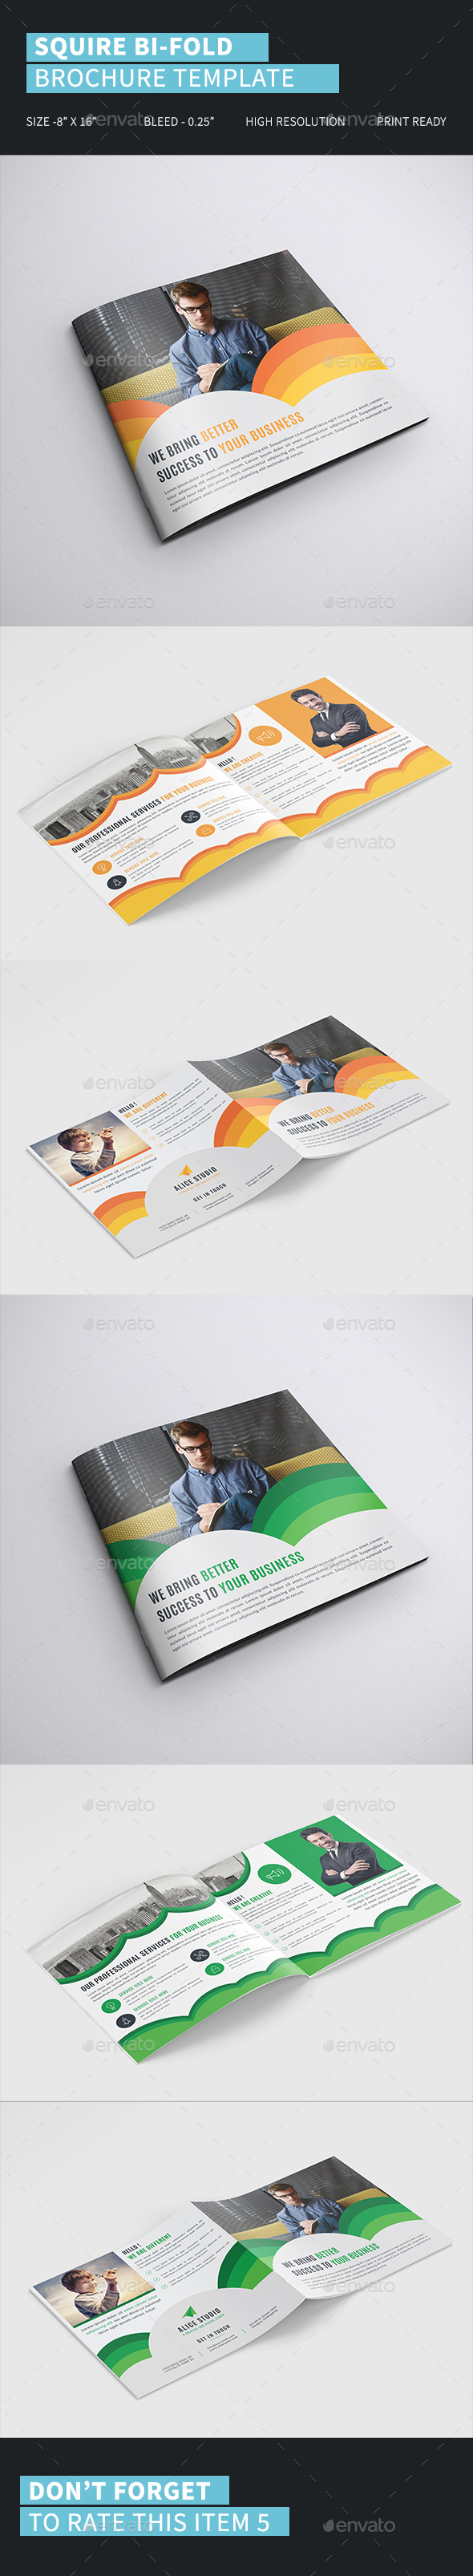 Squire Bi-Fold Brochure Template - Corporate Brochures